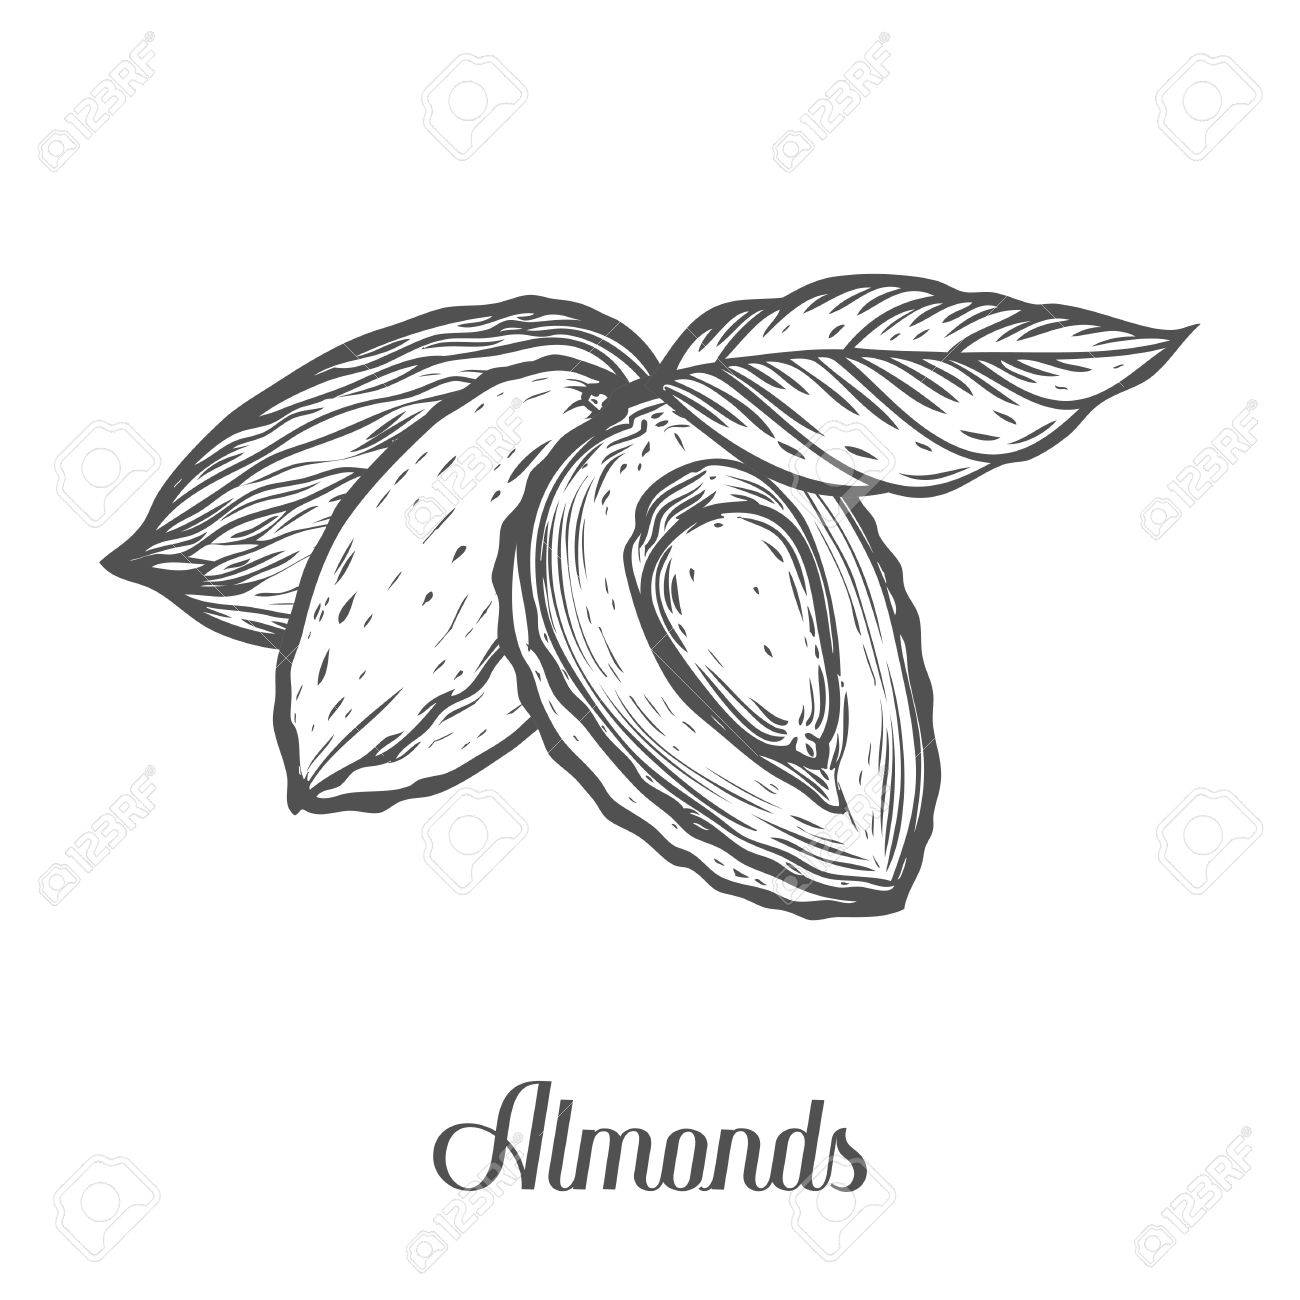 1300x1300 Almond Nut Seed Vector. Isolated On White Background. Almond